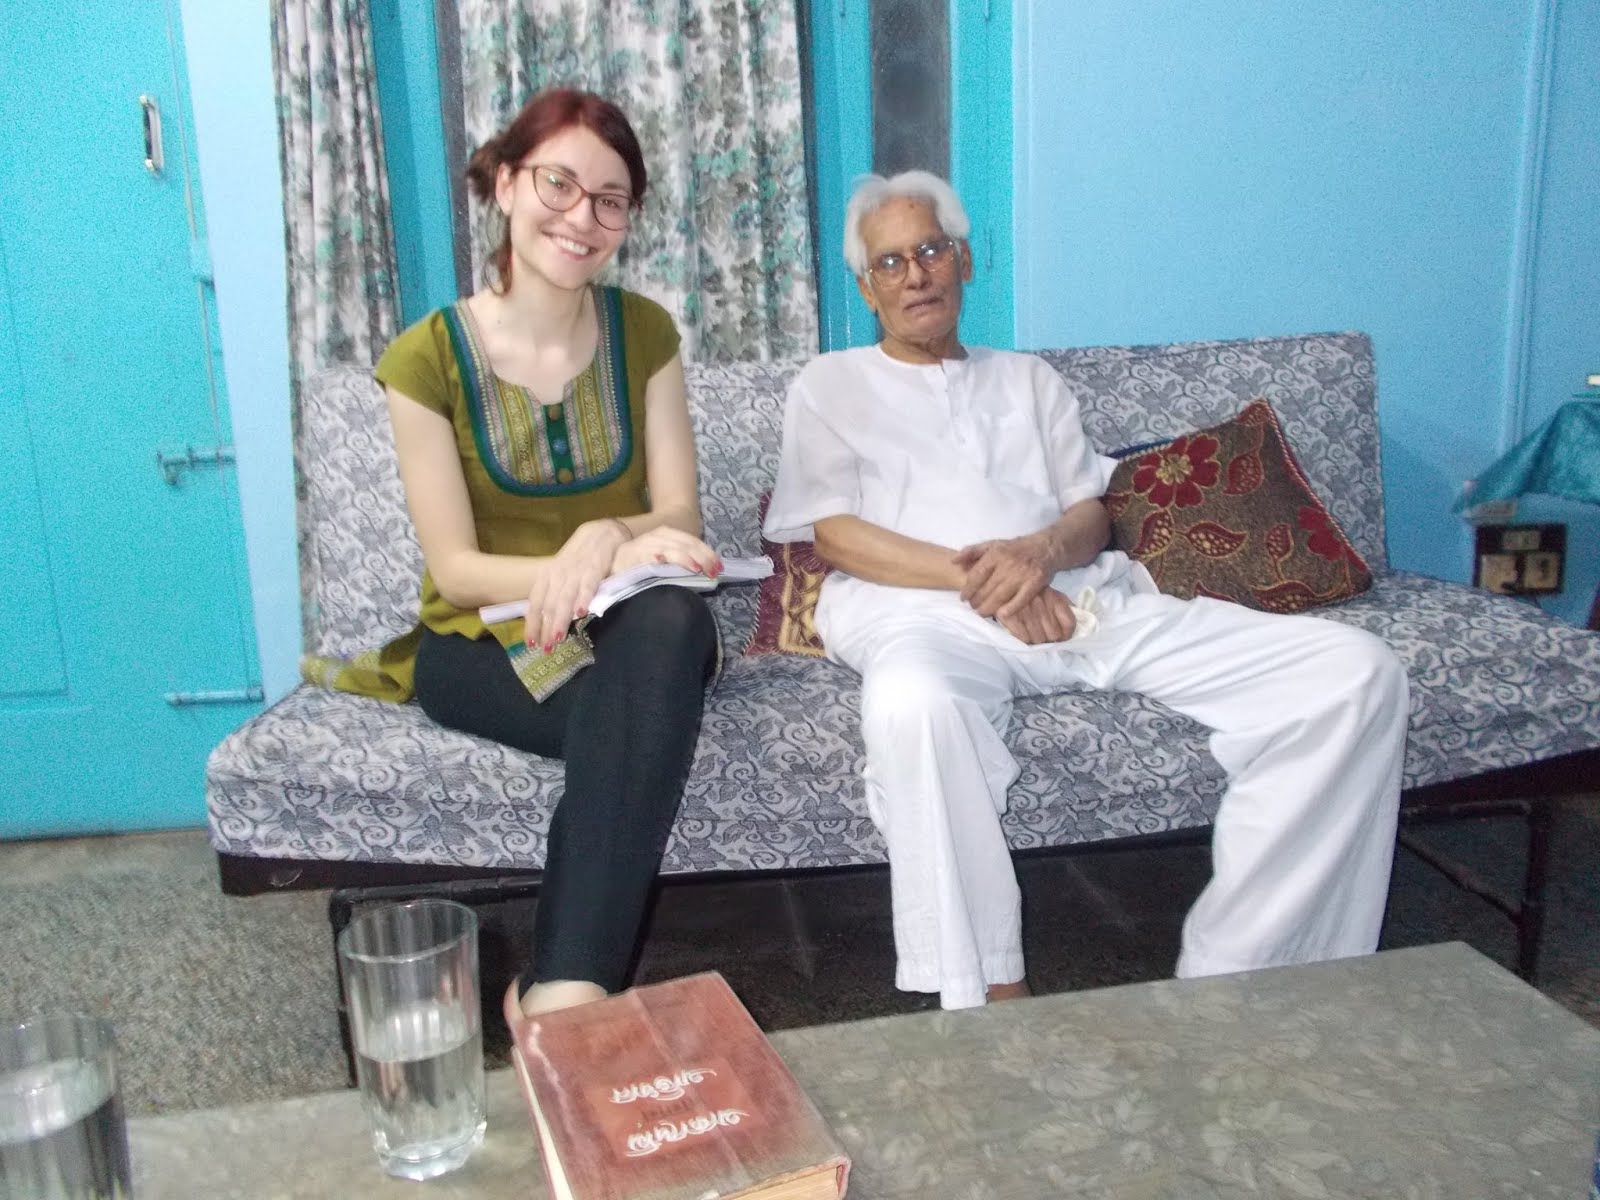 Daniela Cappello interviewing Samir Roychoudhury in 2015